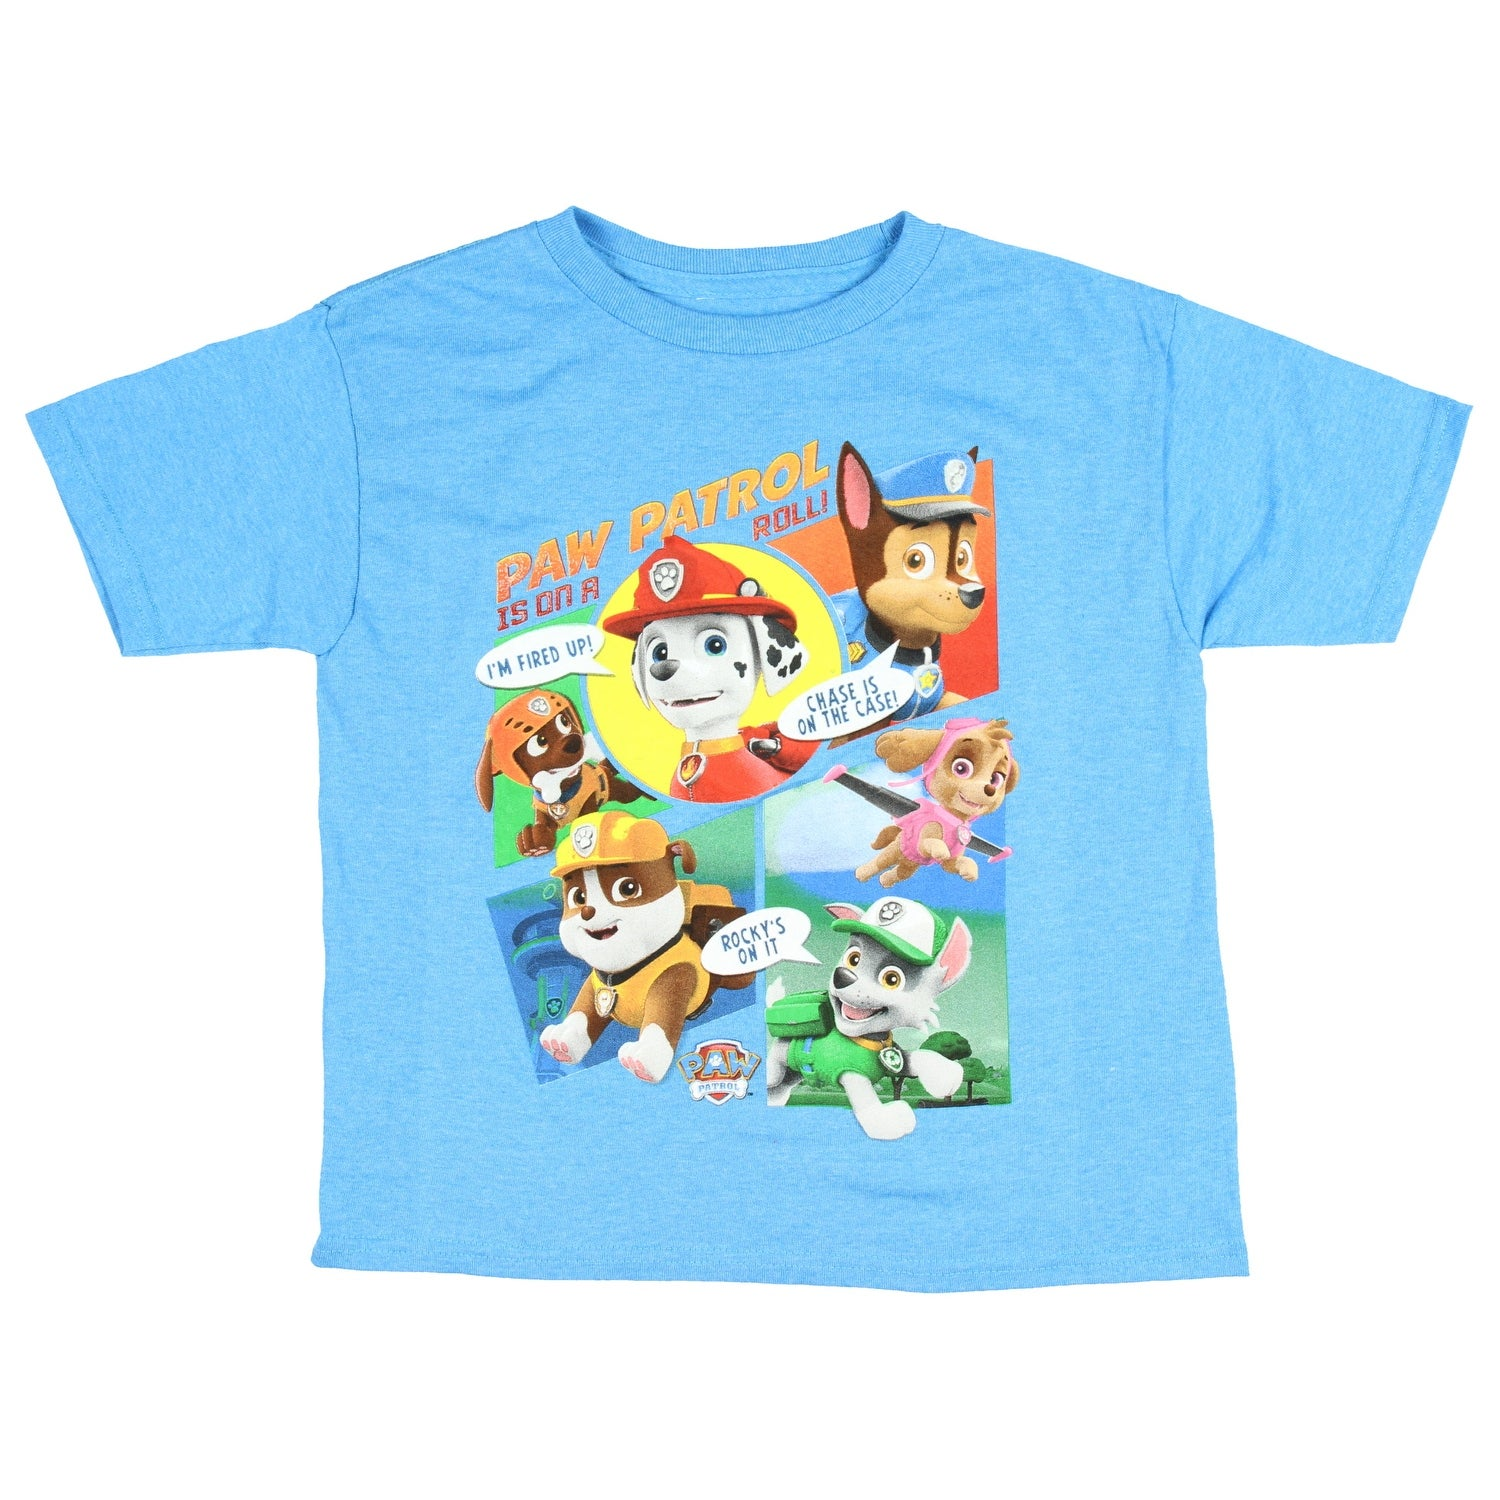 Graphic T-shirt Kids Character Paw Patrol Blue